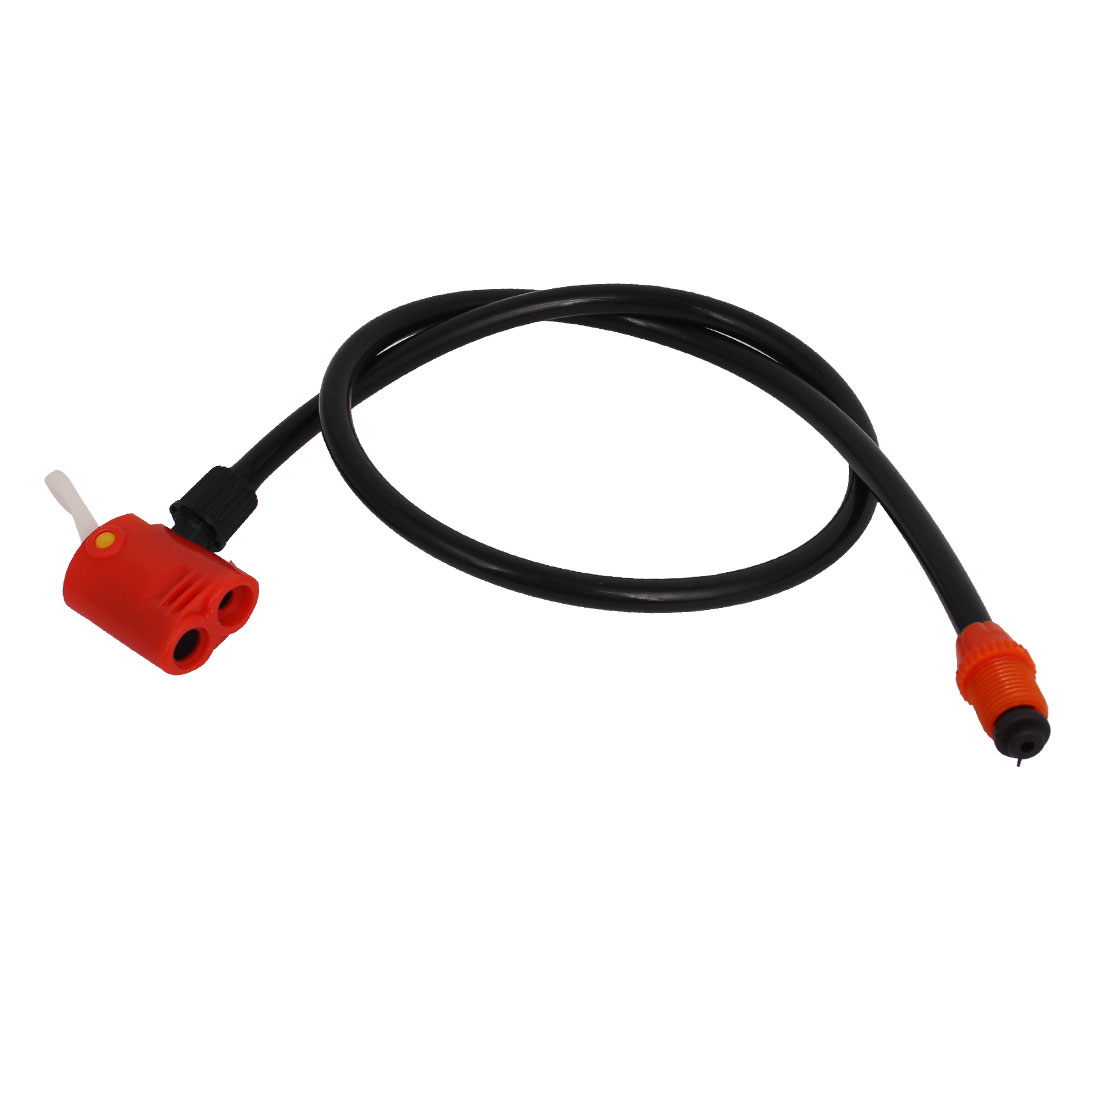 Black Bike Bicycle Tire Schrader Presta Valve Air Gas Inflator Hose